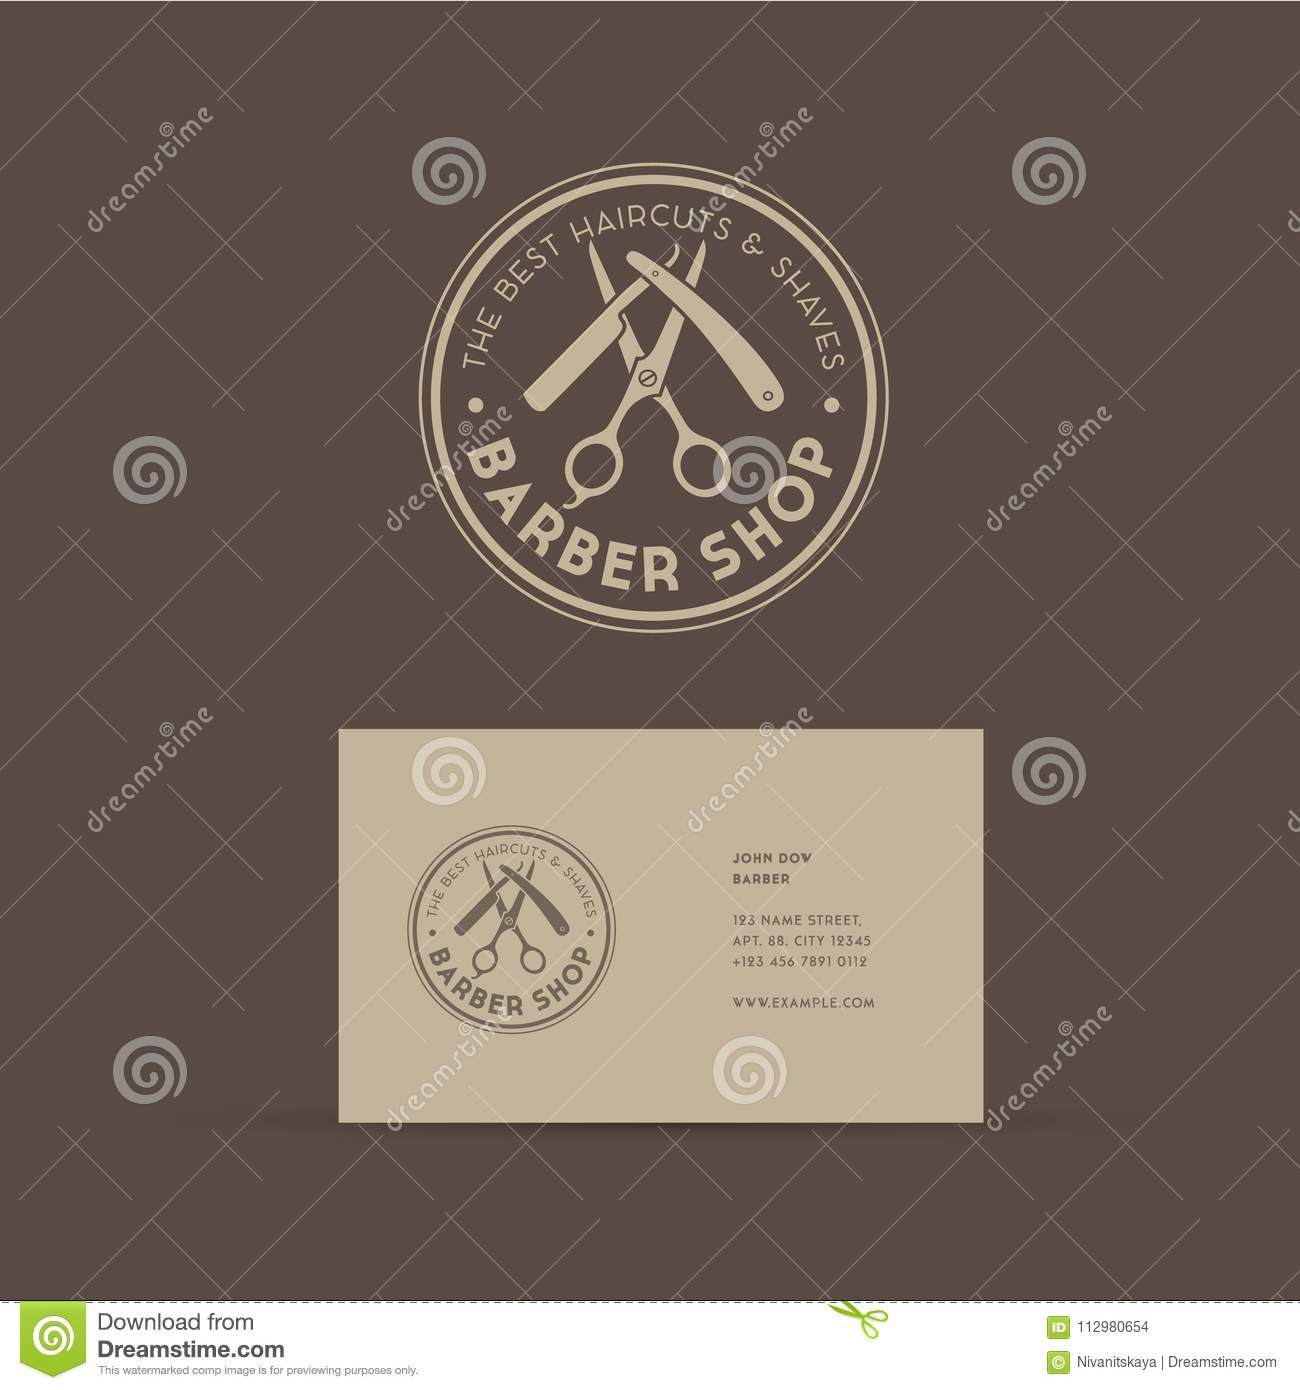 Barber shop logo. Scissors and a razor with letters as an emblem.